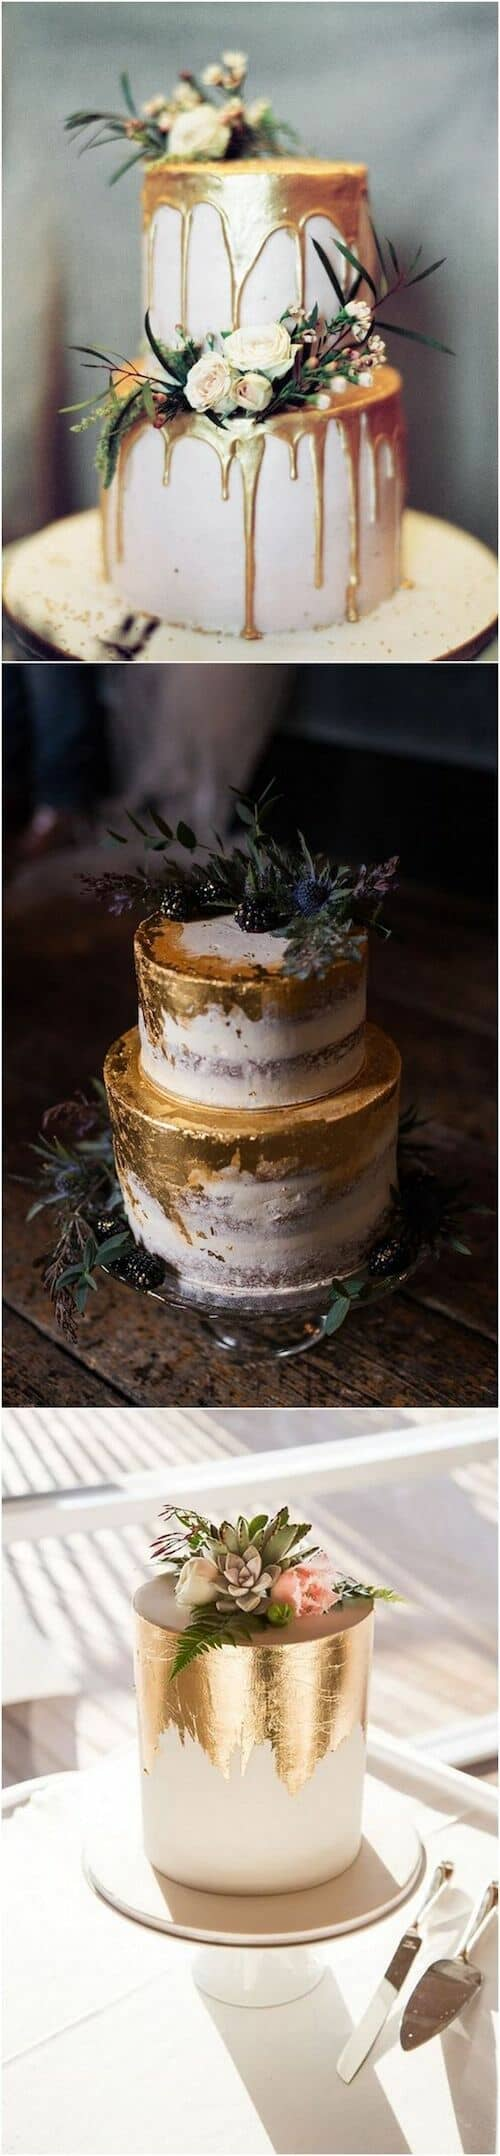 Metallic wedding cakes, the sensation of 2018 weddings, can be a great fit for your woodland wedding no matter what season.